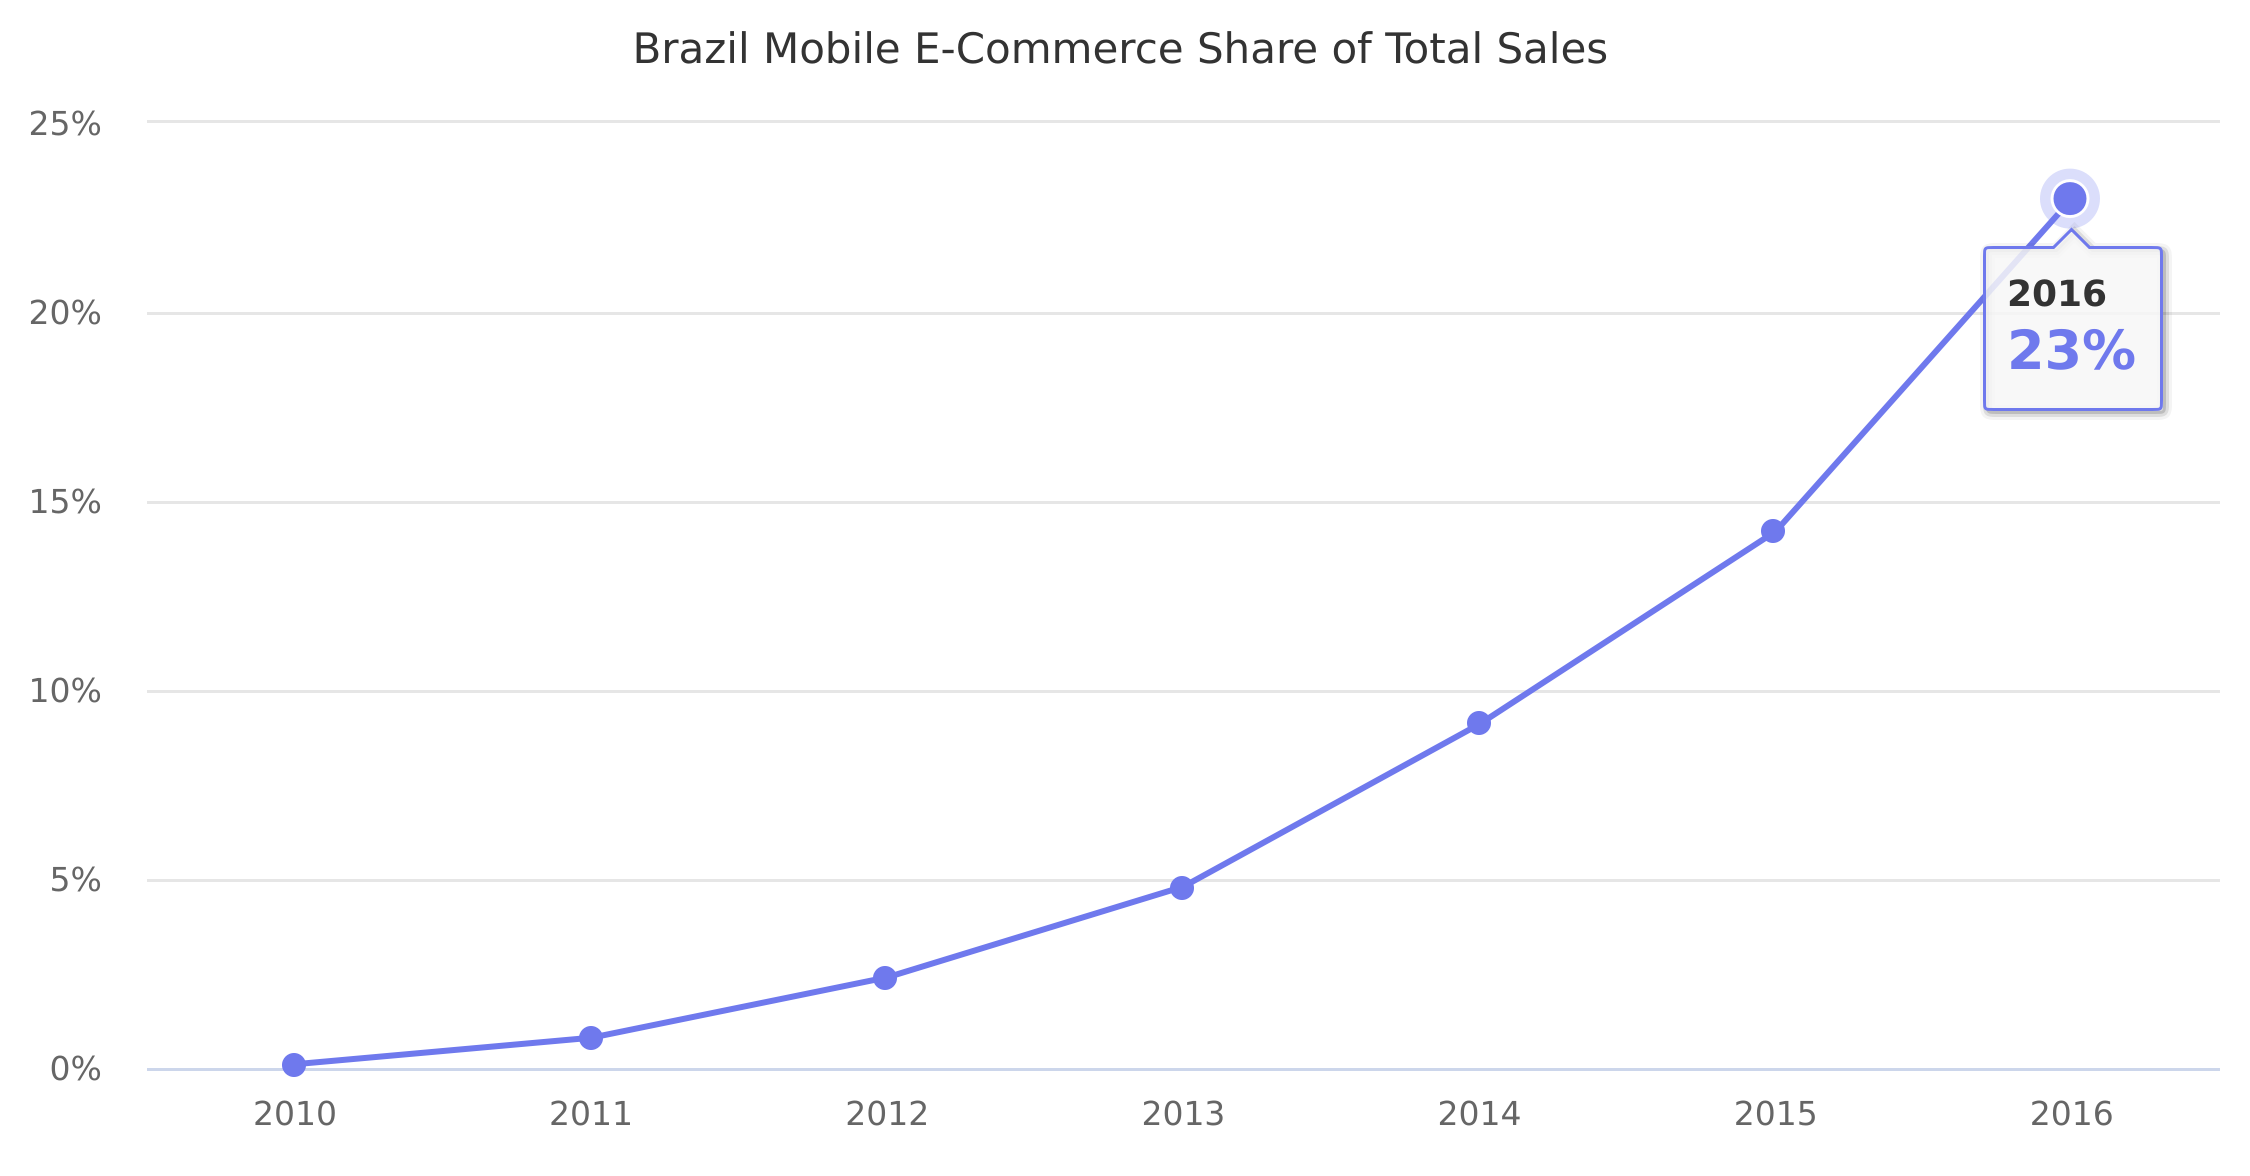 Brazil Mobile E-Commerce Share of Total Sales 2010-2016